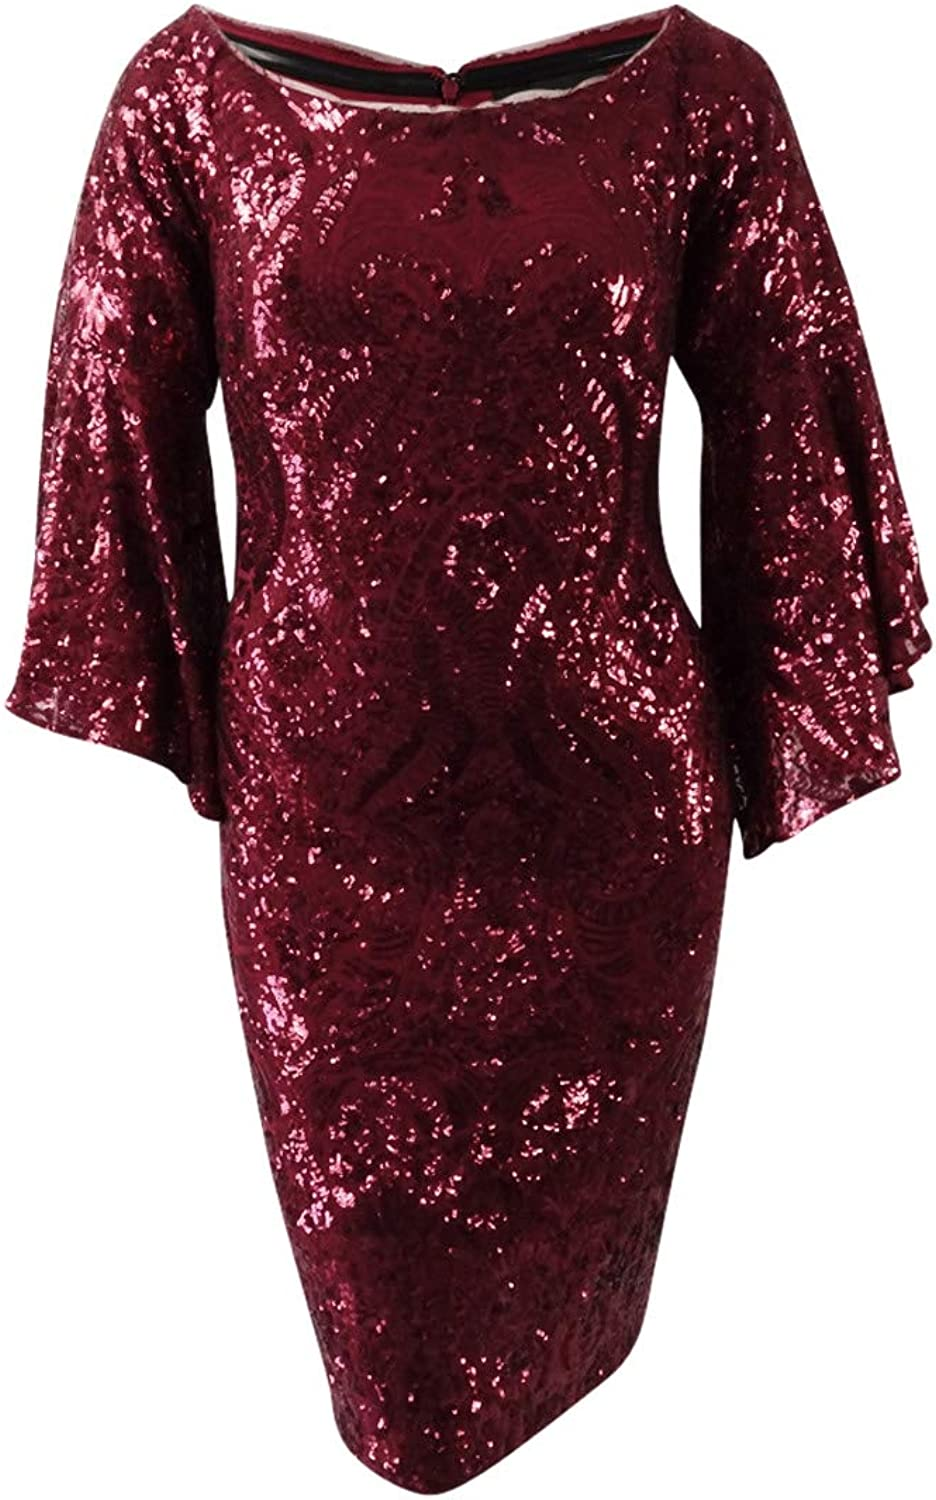 Betsy & Adam Womens Sequined Bell Sleeves Party Dress